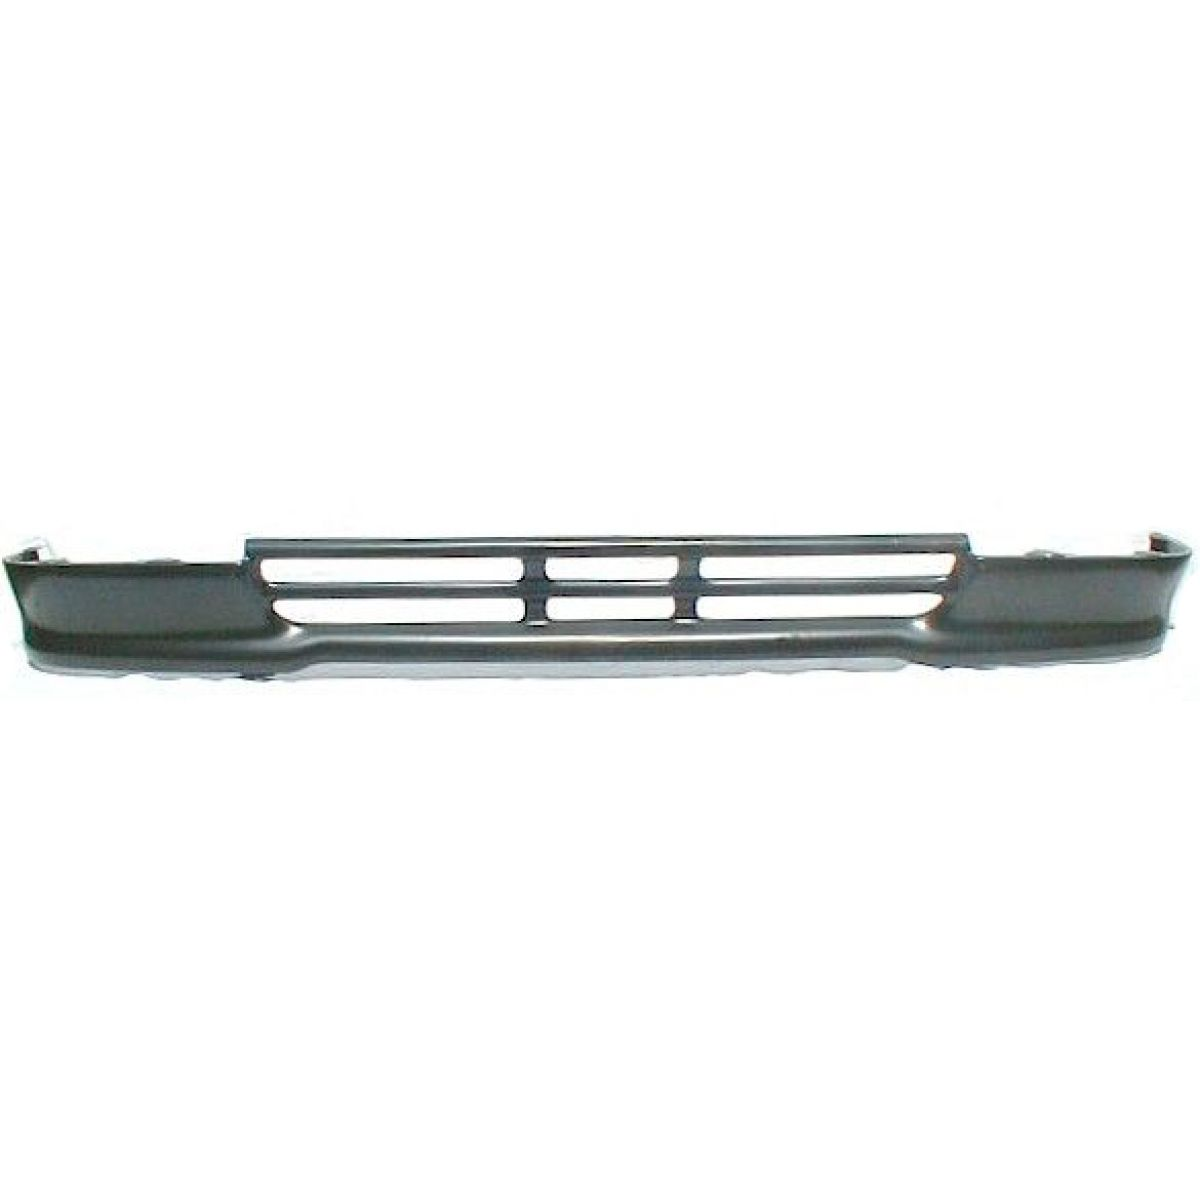 hight resolution of steel front lower valance panel for 92 95 toyota pickup truck 4wd 4x4